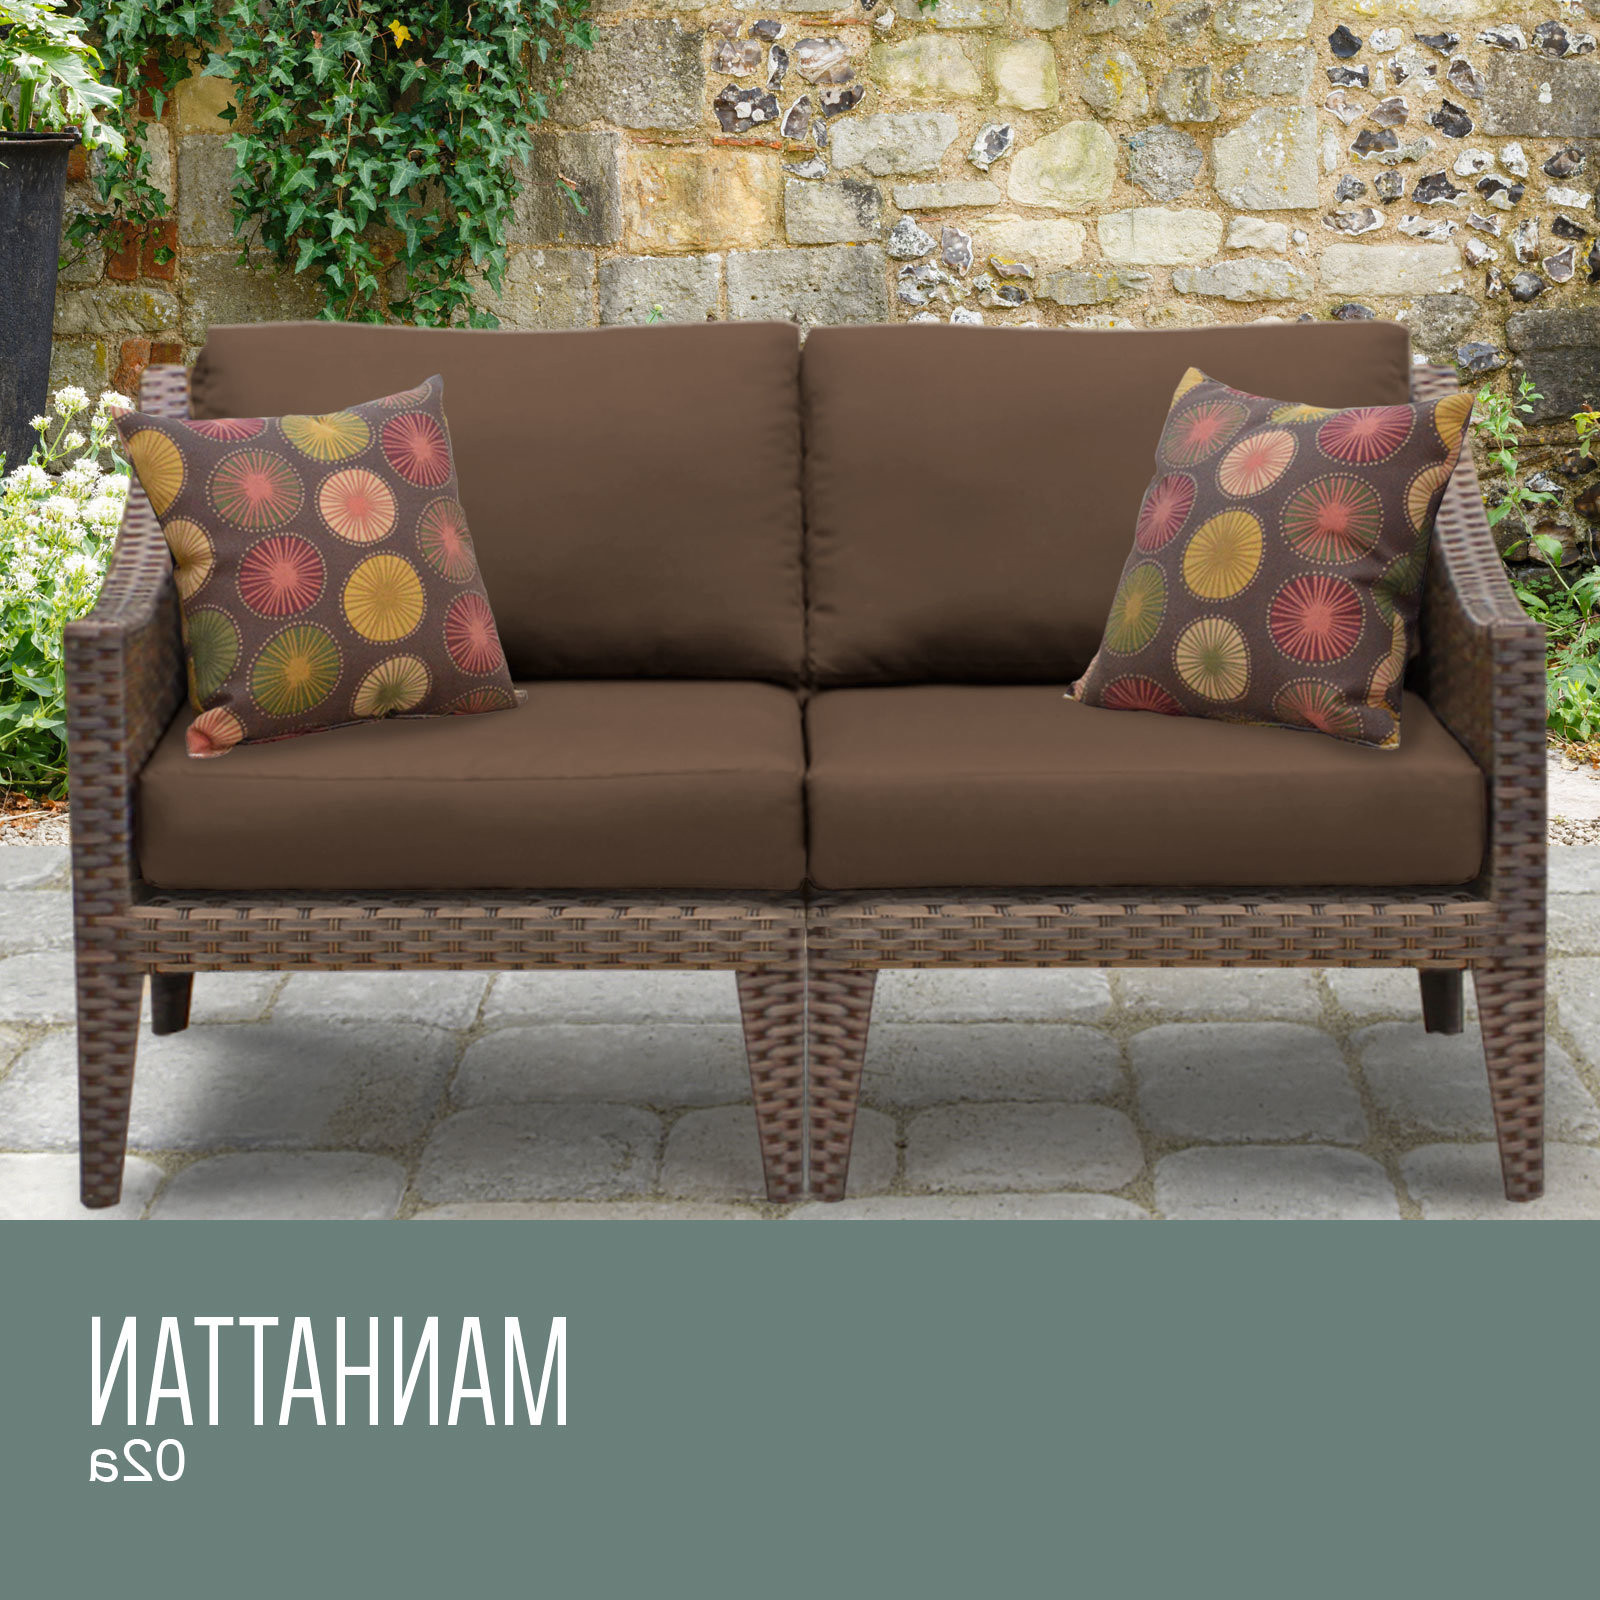 Most Popular Laverton Loveseats With Cushions Throughout Manhattan Outdoor Loveseat With Cushions (View 13 of 20)